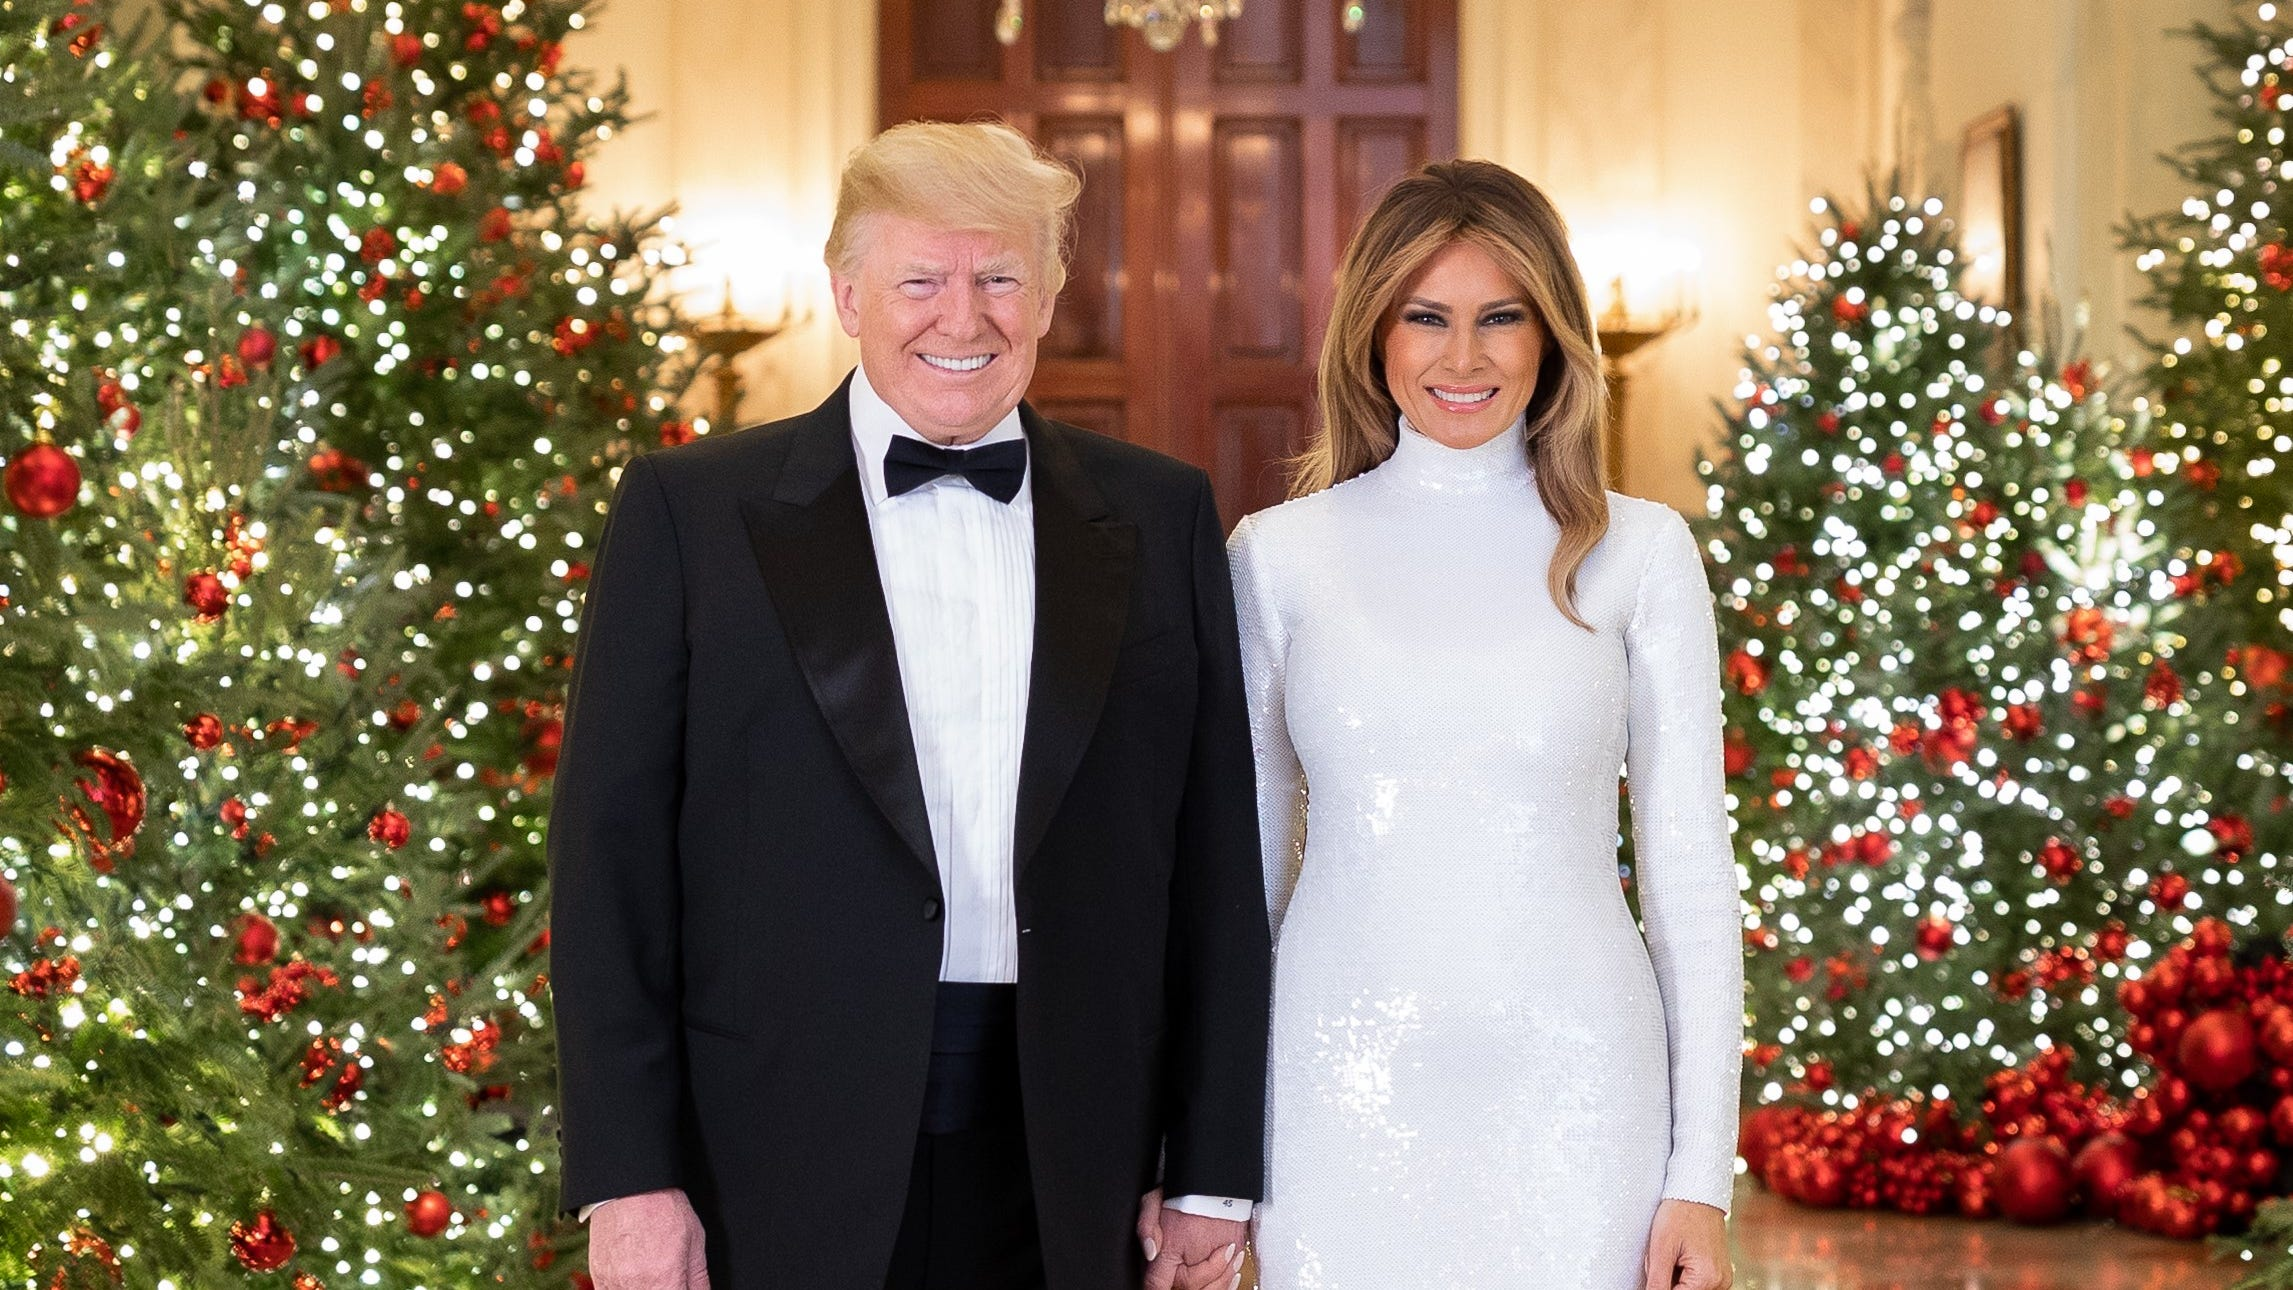 Washington, D.C. President Donald J. Trump and First Lady Melania Trump are seen in their Official Christmas Portrait in the Cross Hall of the White House.